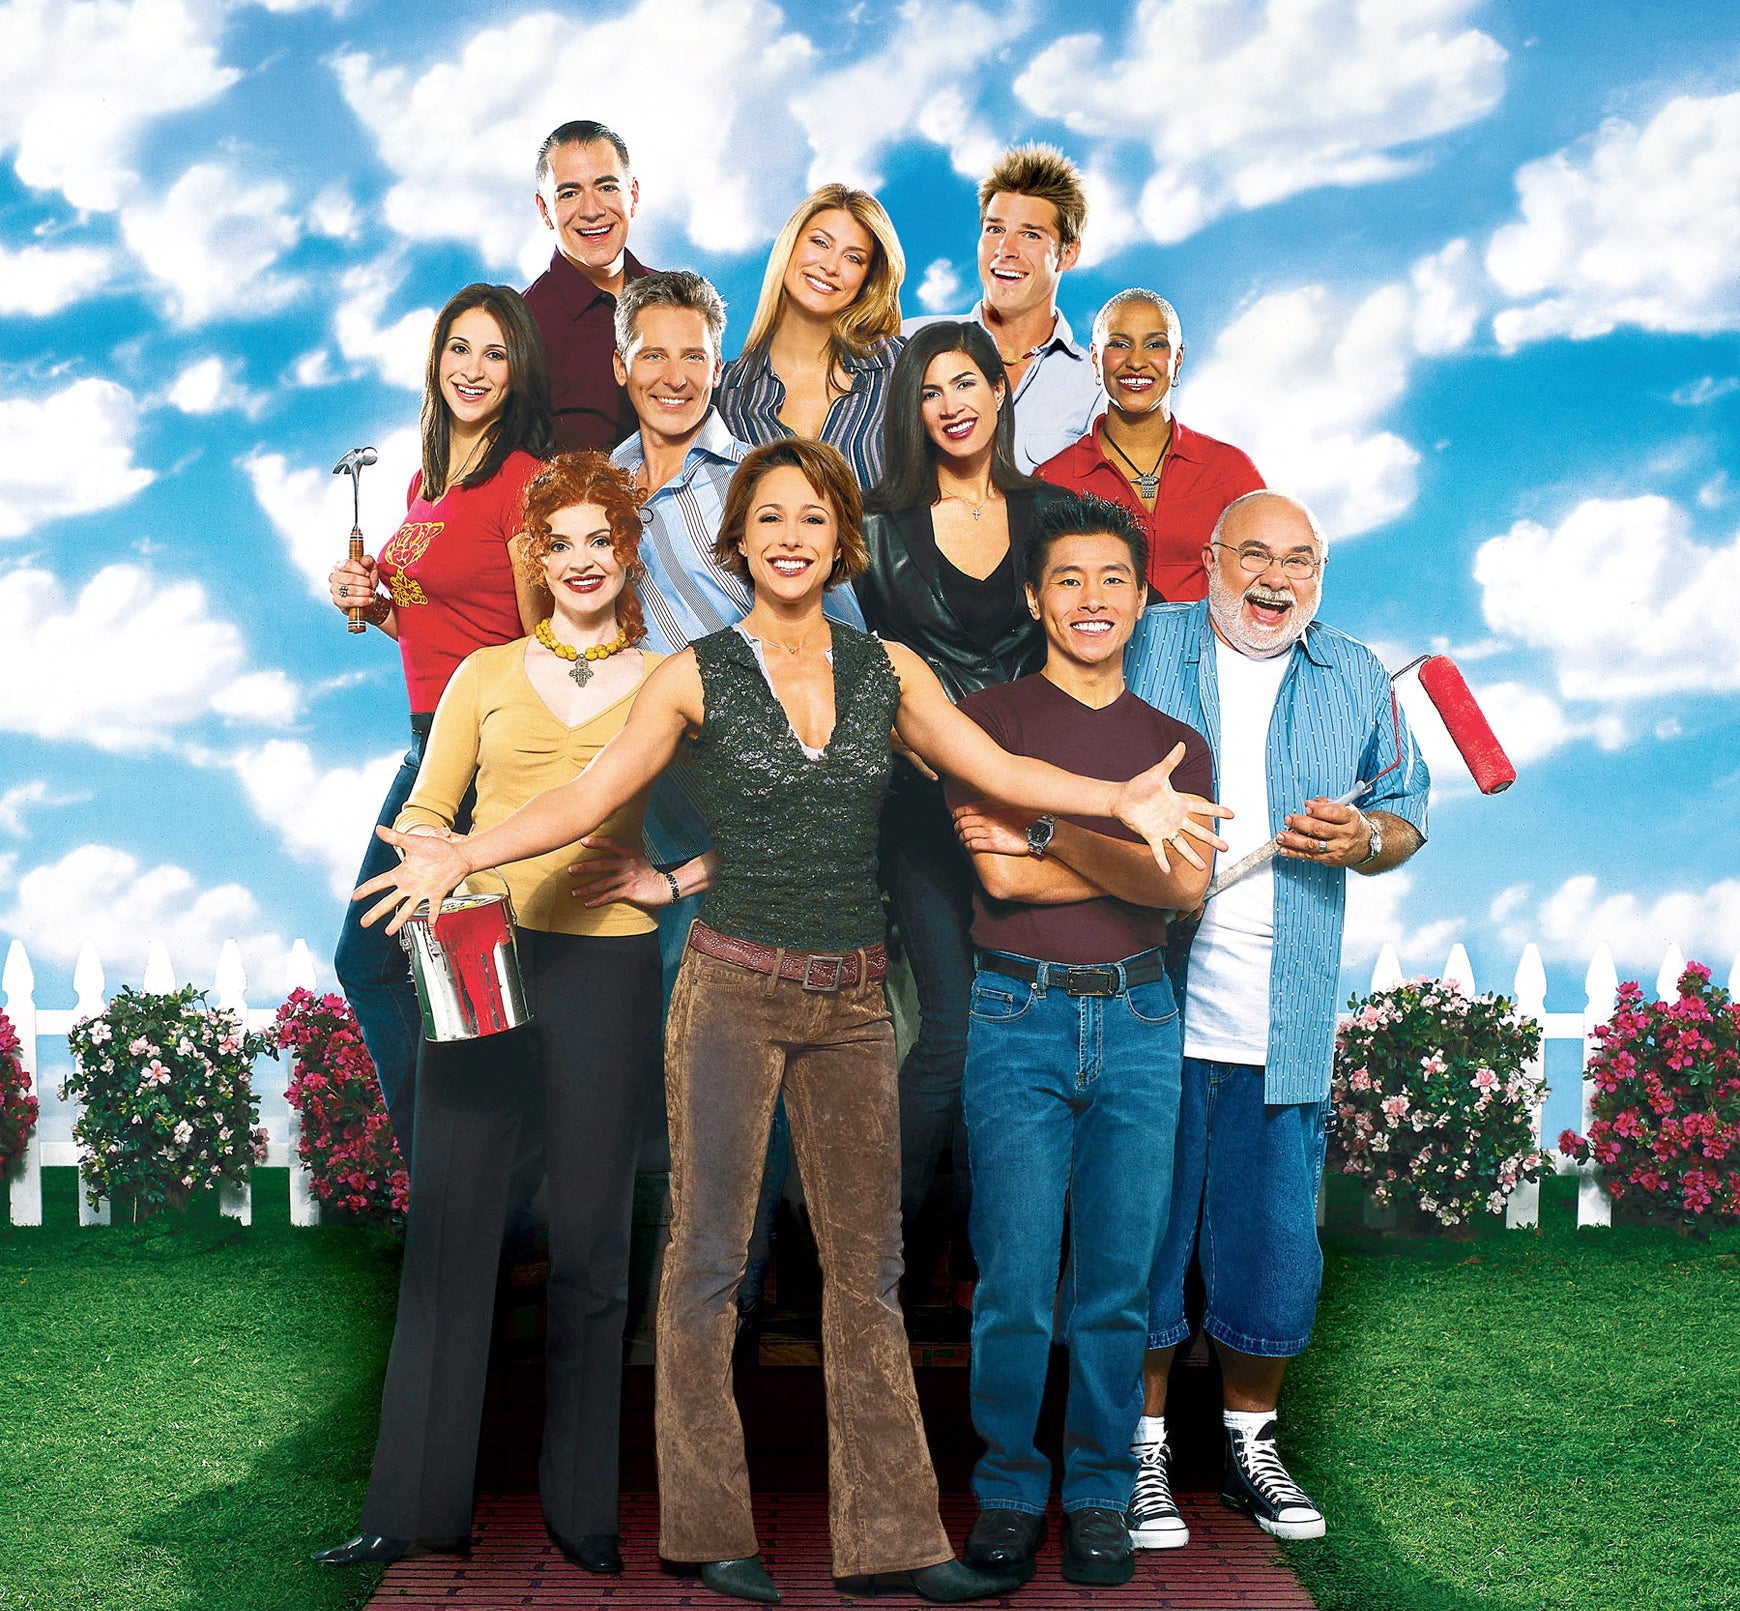 A promo photo of the cast of Trading Spaces